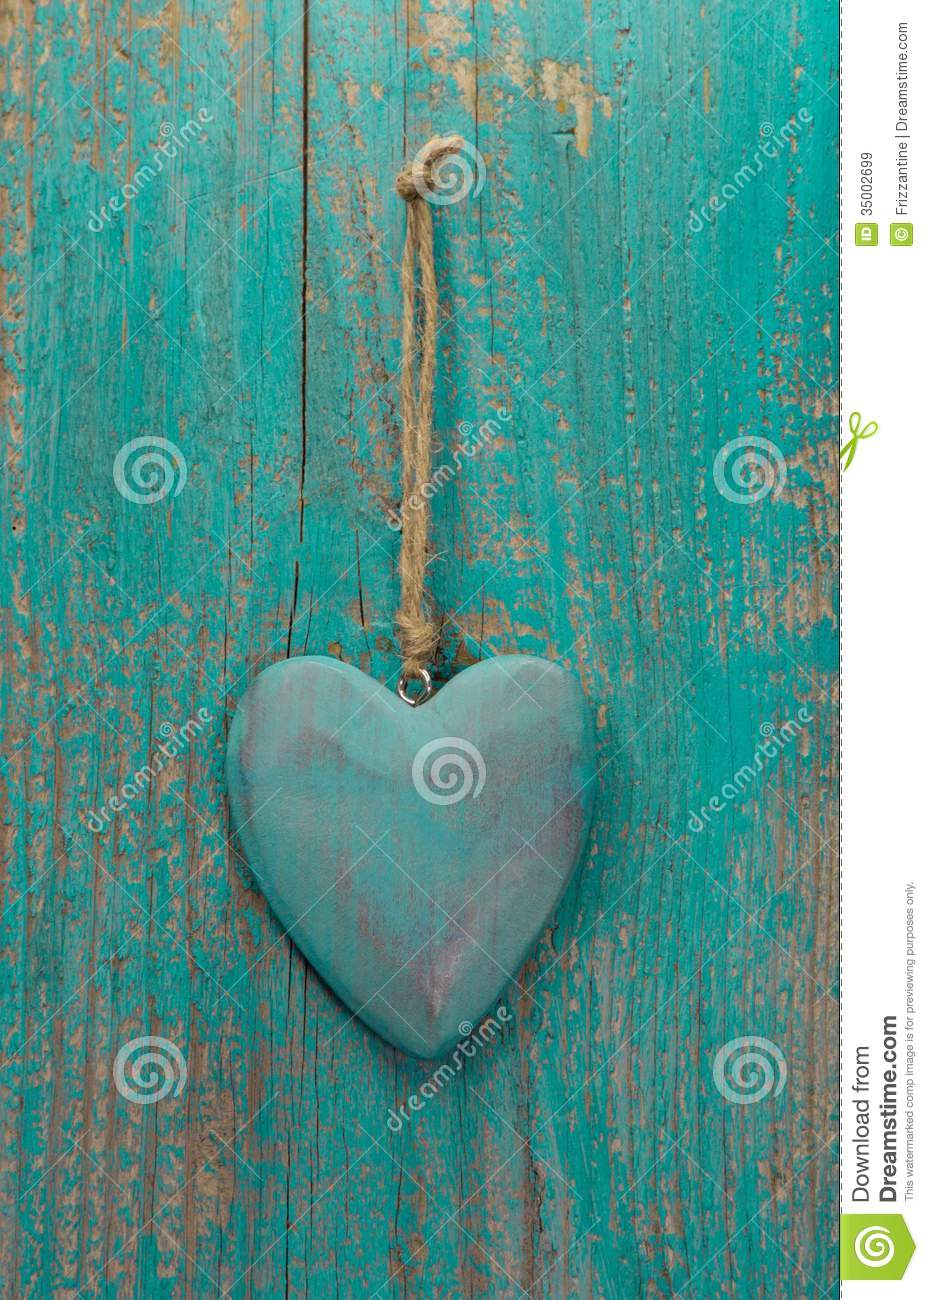 Rustic Heart On Turquoise Wooden Surface For Valentine ...